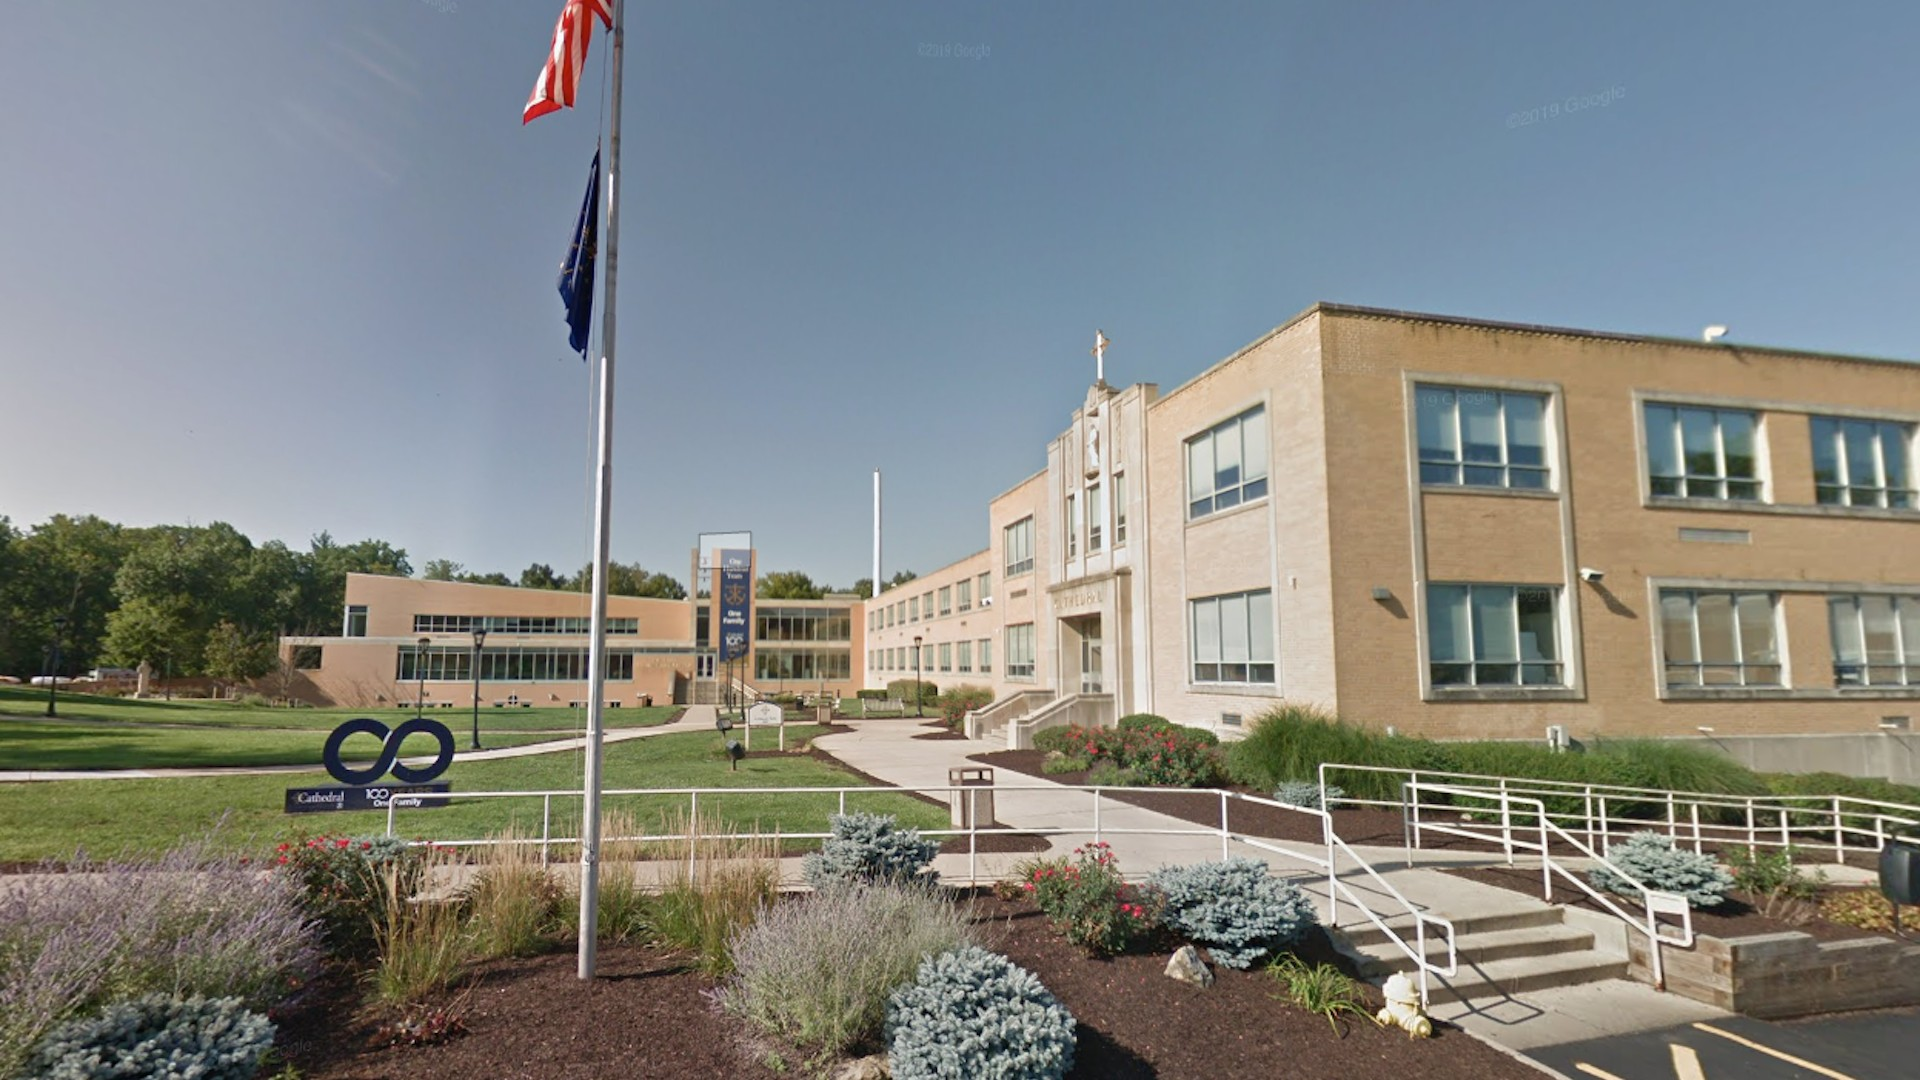 This Catholic School Fired a Gay Teacher During Pride Month